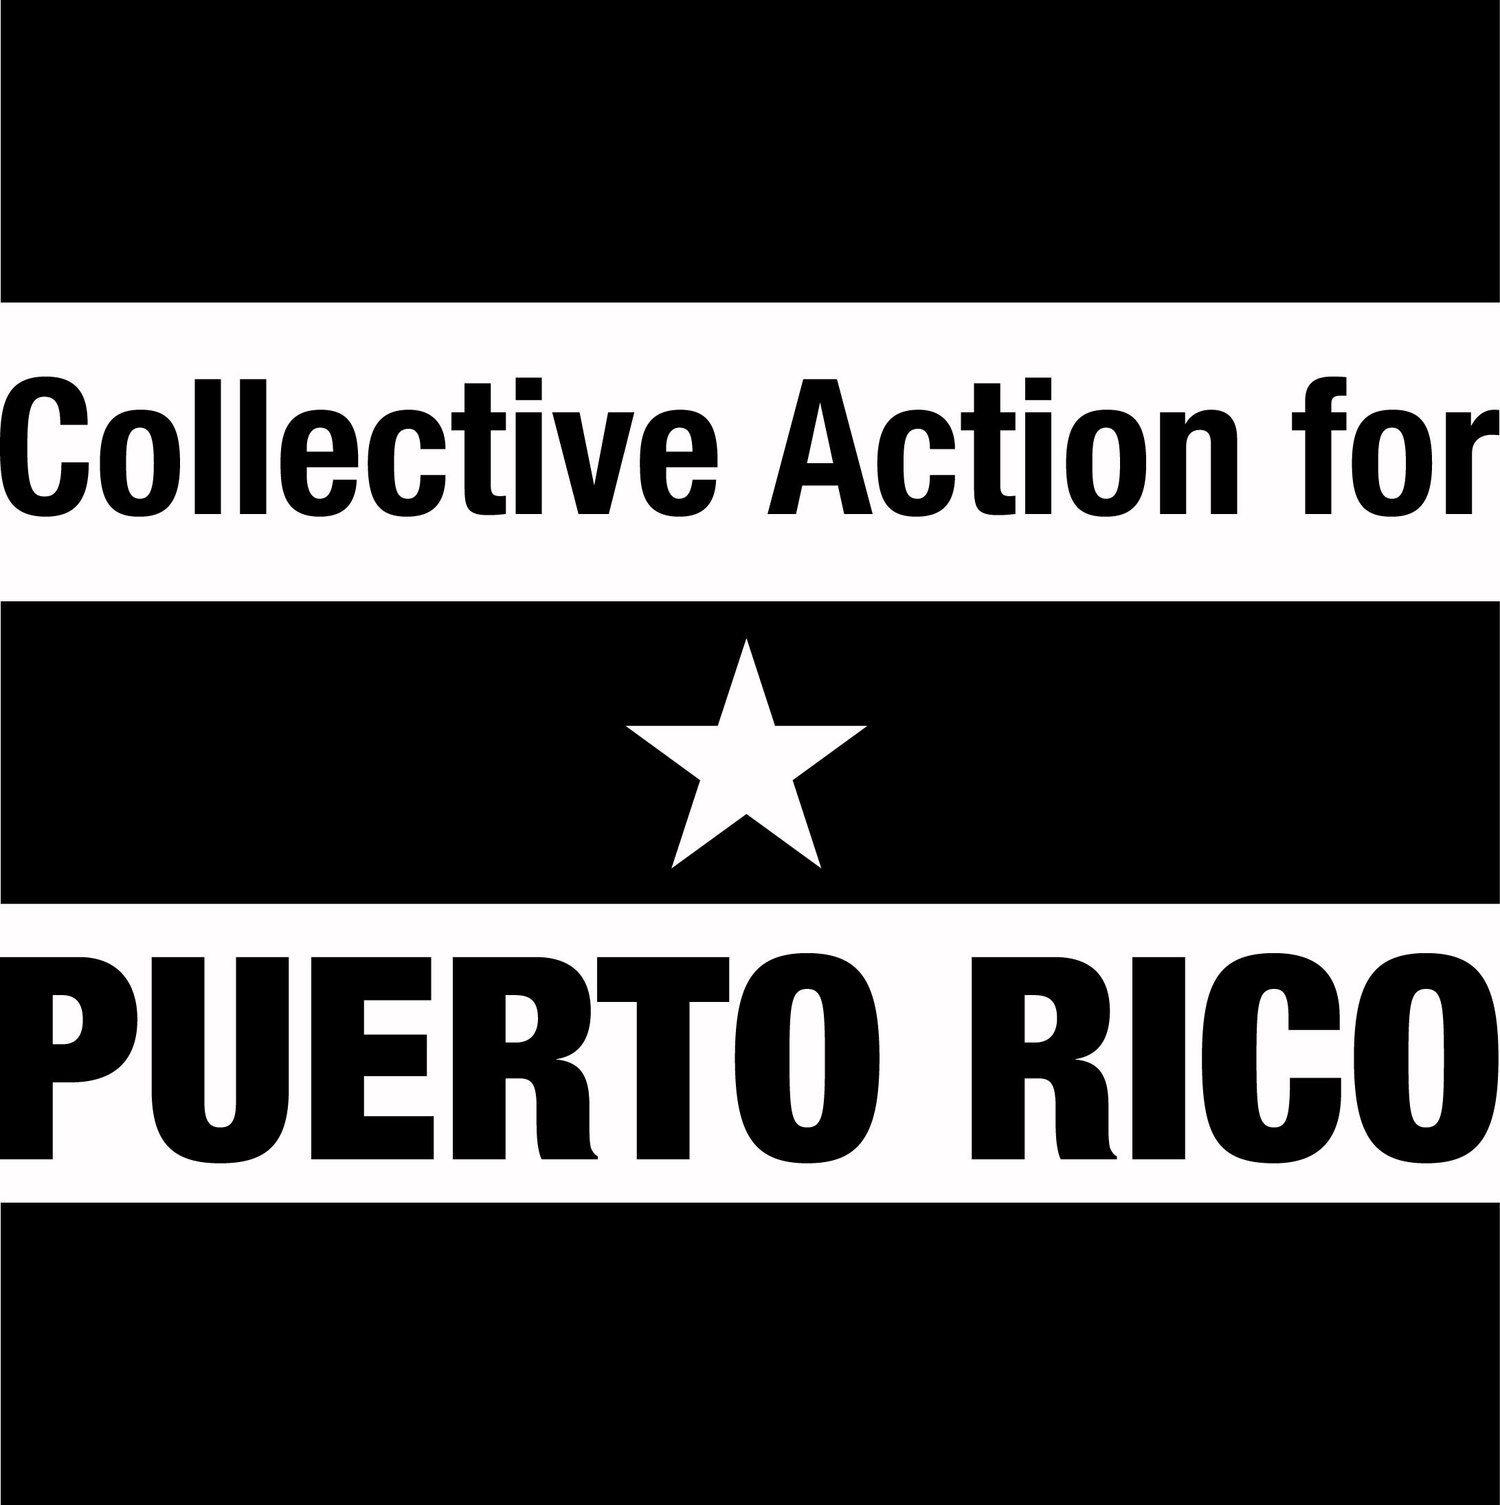 Collective Action for Puerto Rico